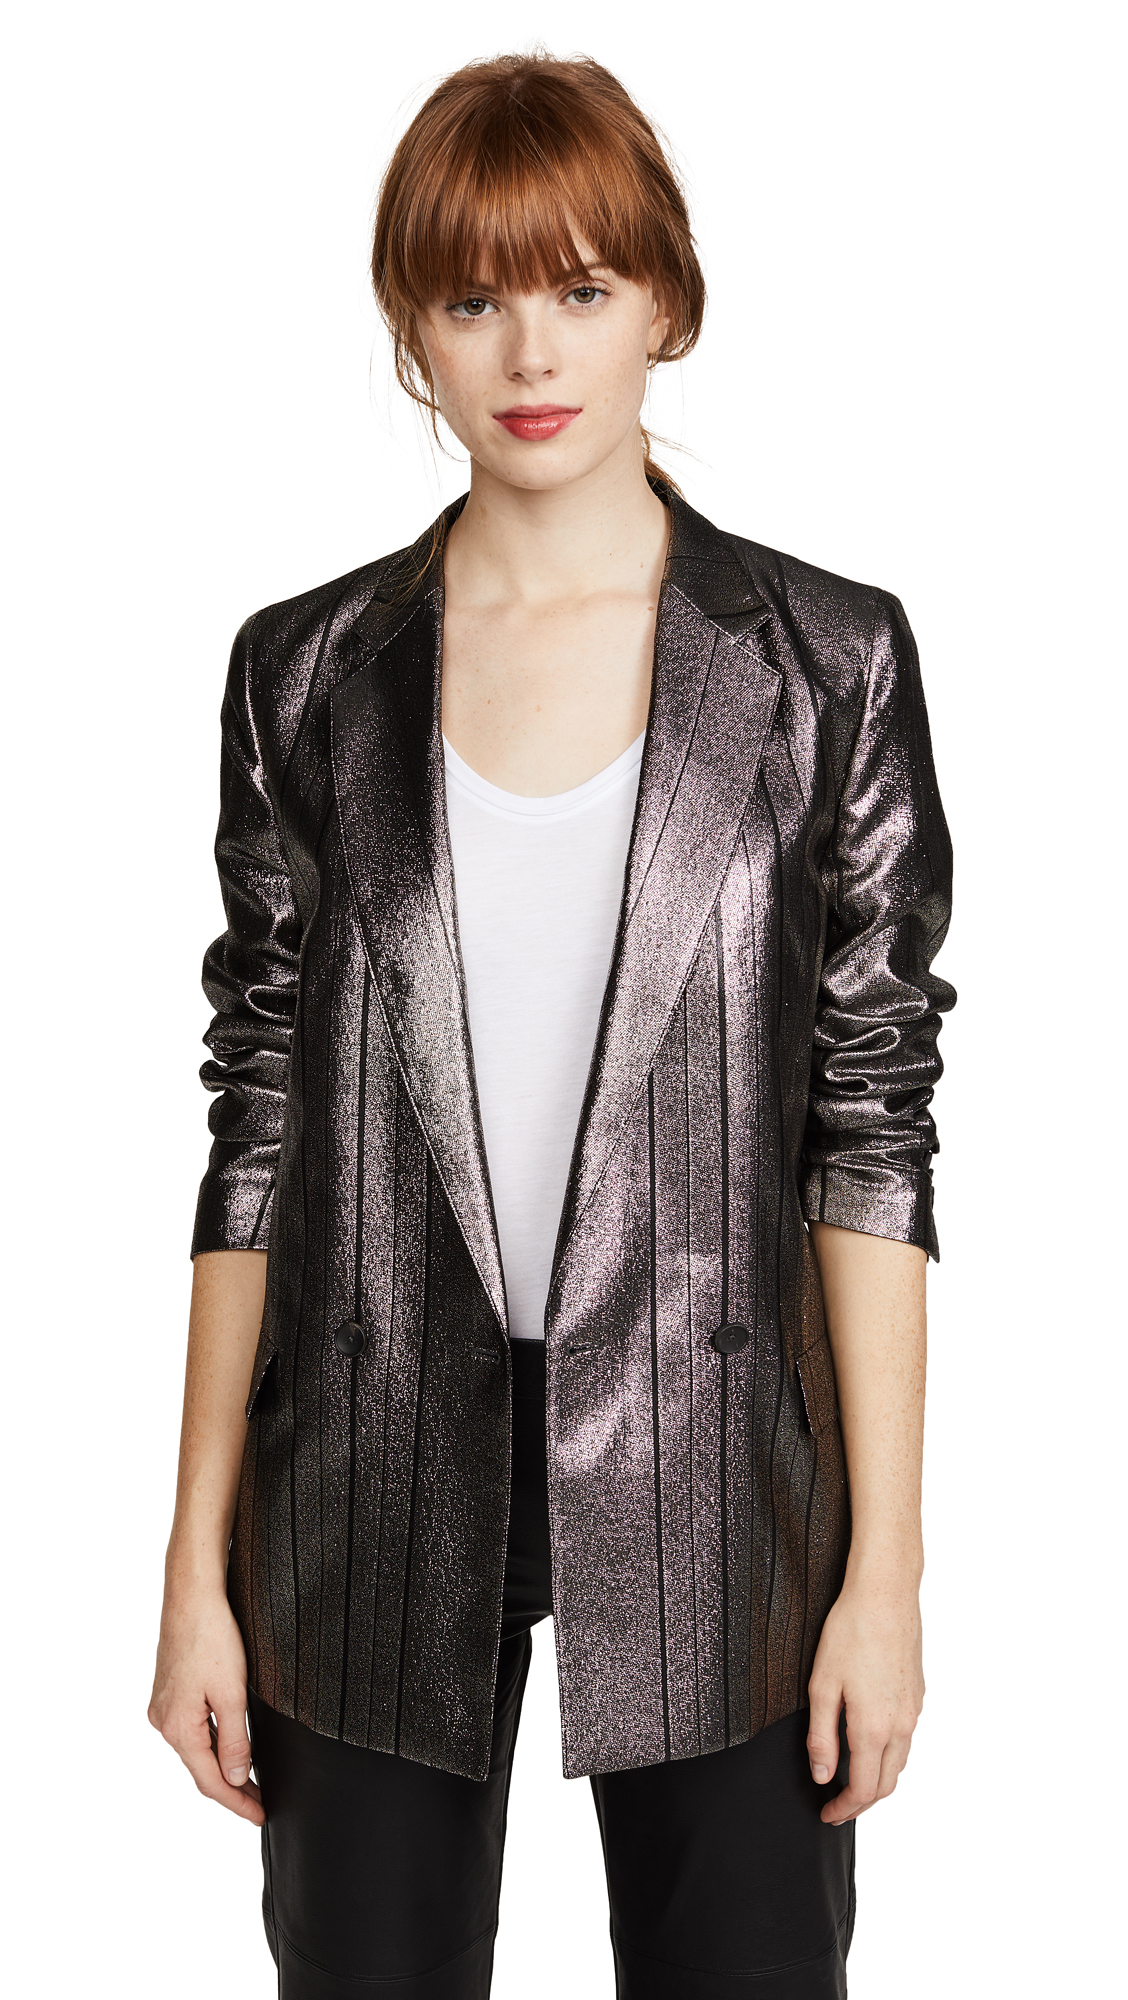 Paul Smith Metallic Blazer In Silver